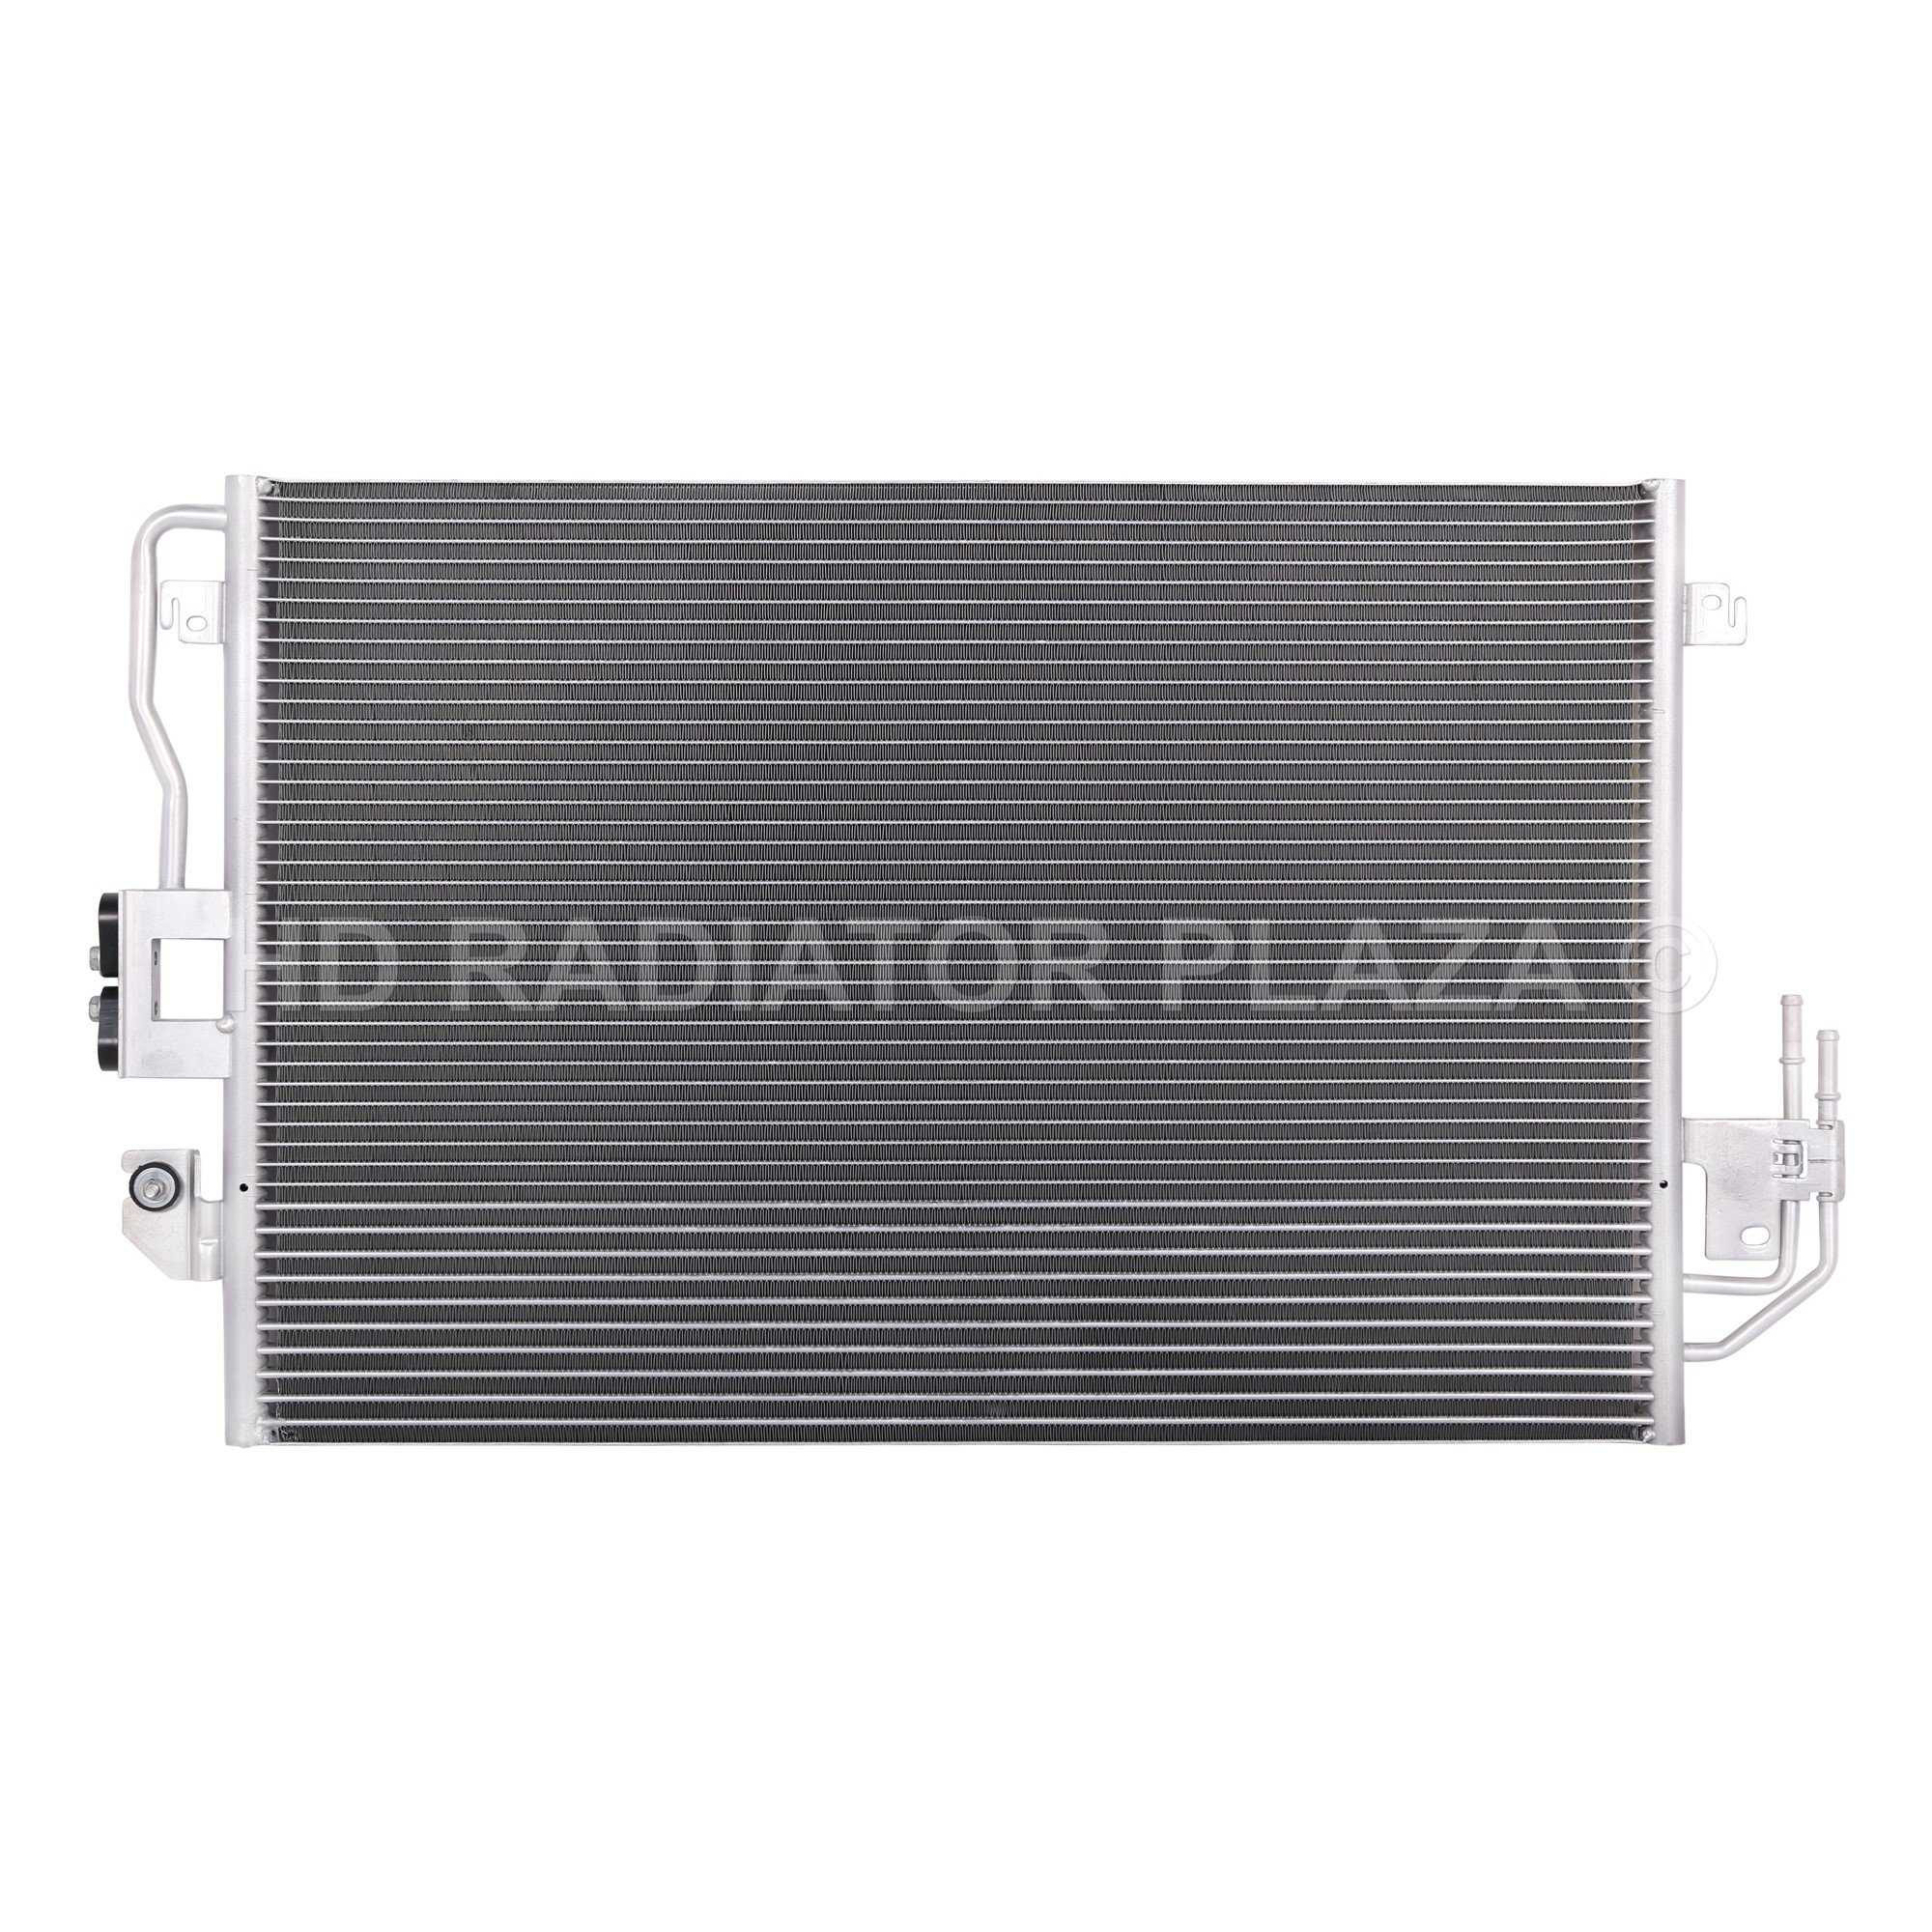 AC Condensers for 2008 Ford Escape, Mazda Tribute, Mercury Mariner, 2.3L I4, 3.0 V6